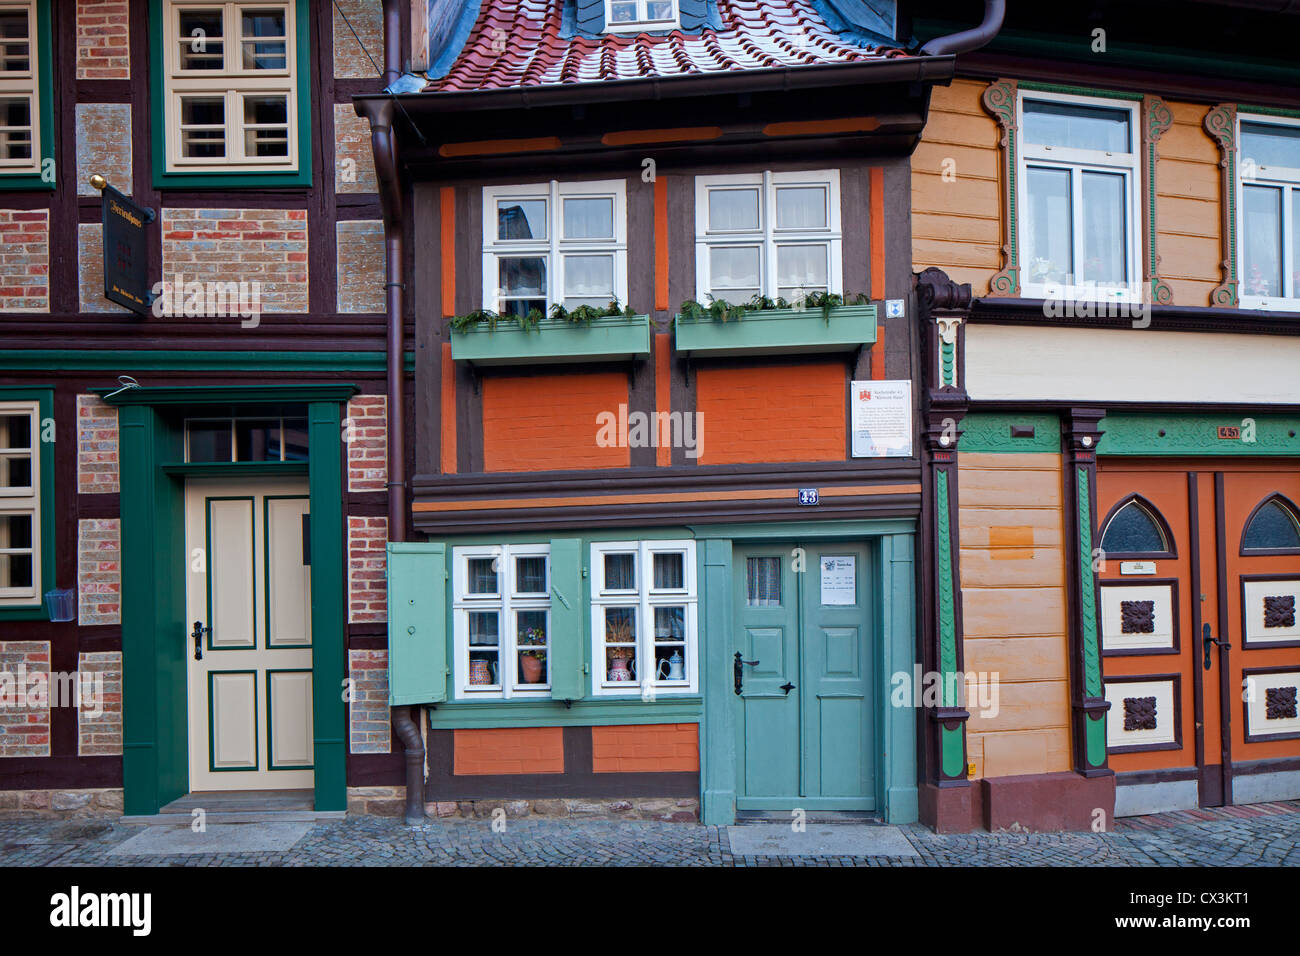 Wernigerode's smallest house in the Kochstrasse, now a museum, Wernigerode, Harz, Saxony-Anhalt, Germany - Stock Image